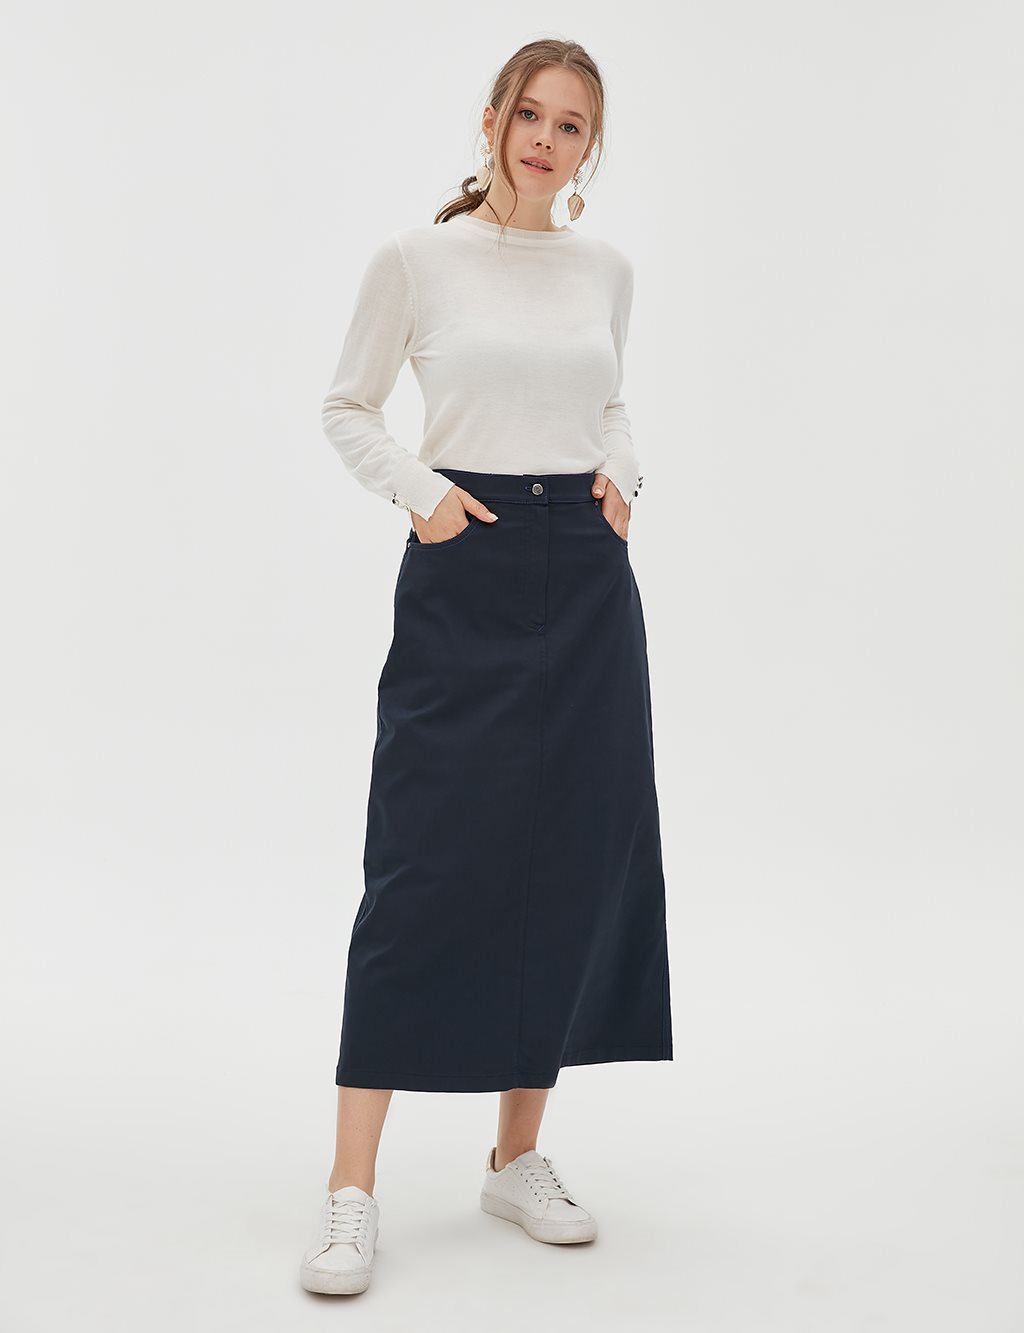 Canvas Skirt With Button Detailed B20 12022 Navy